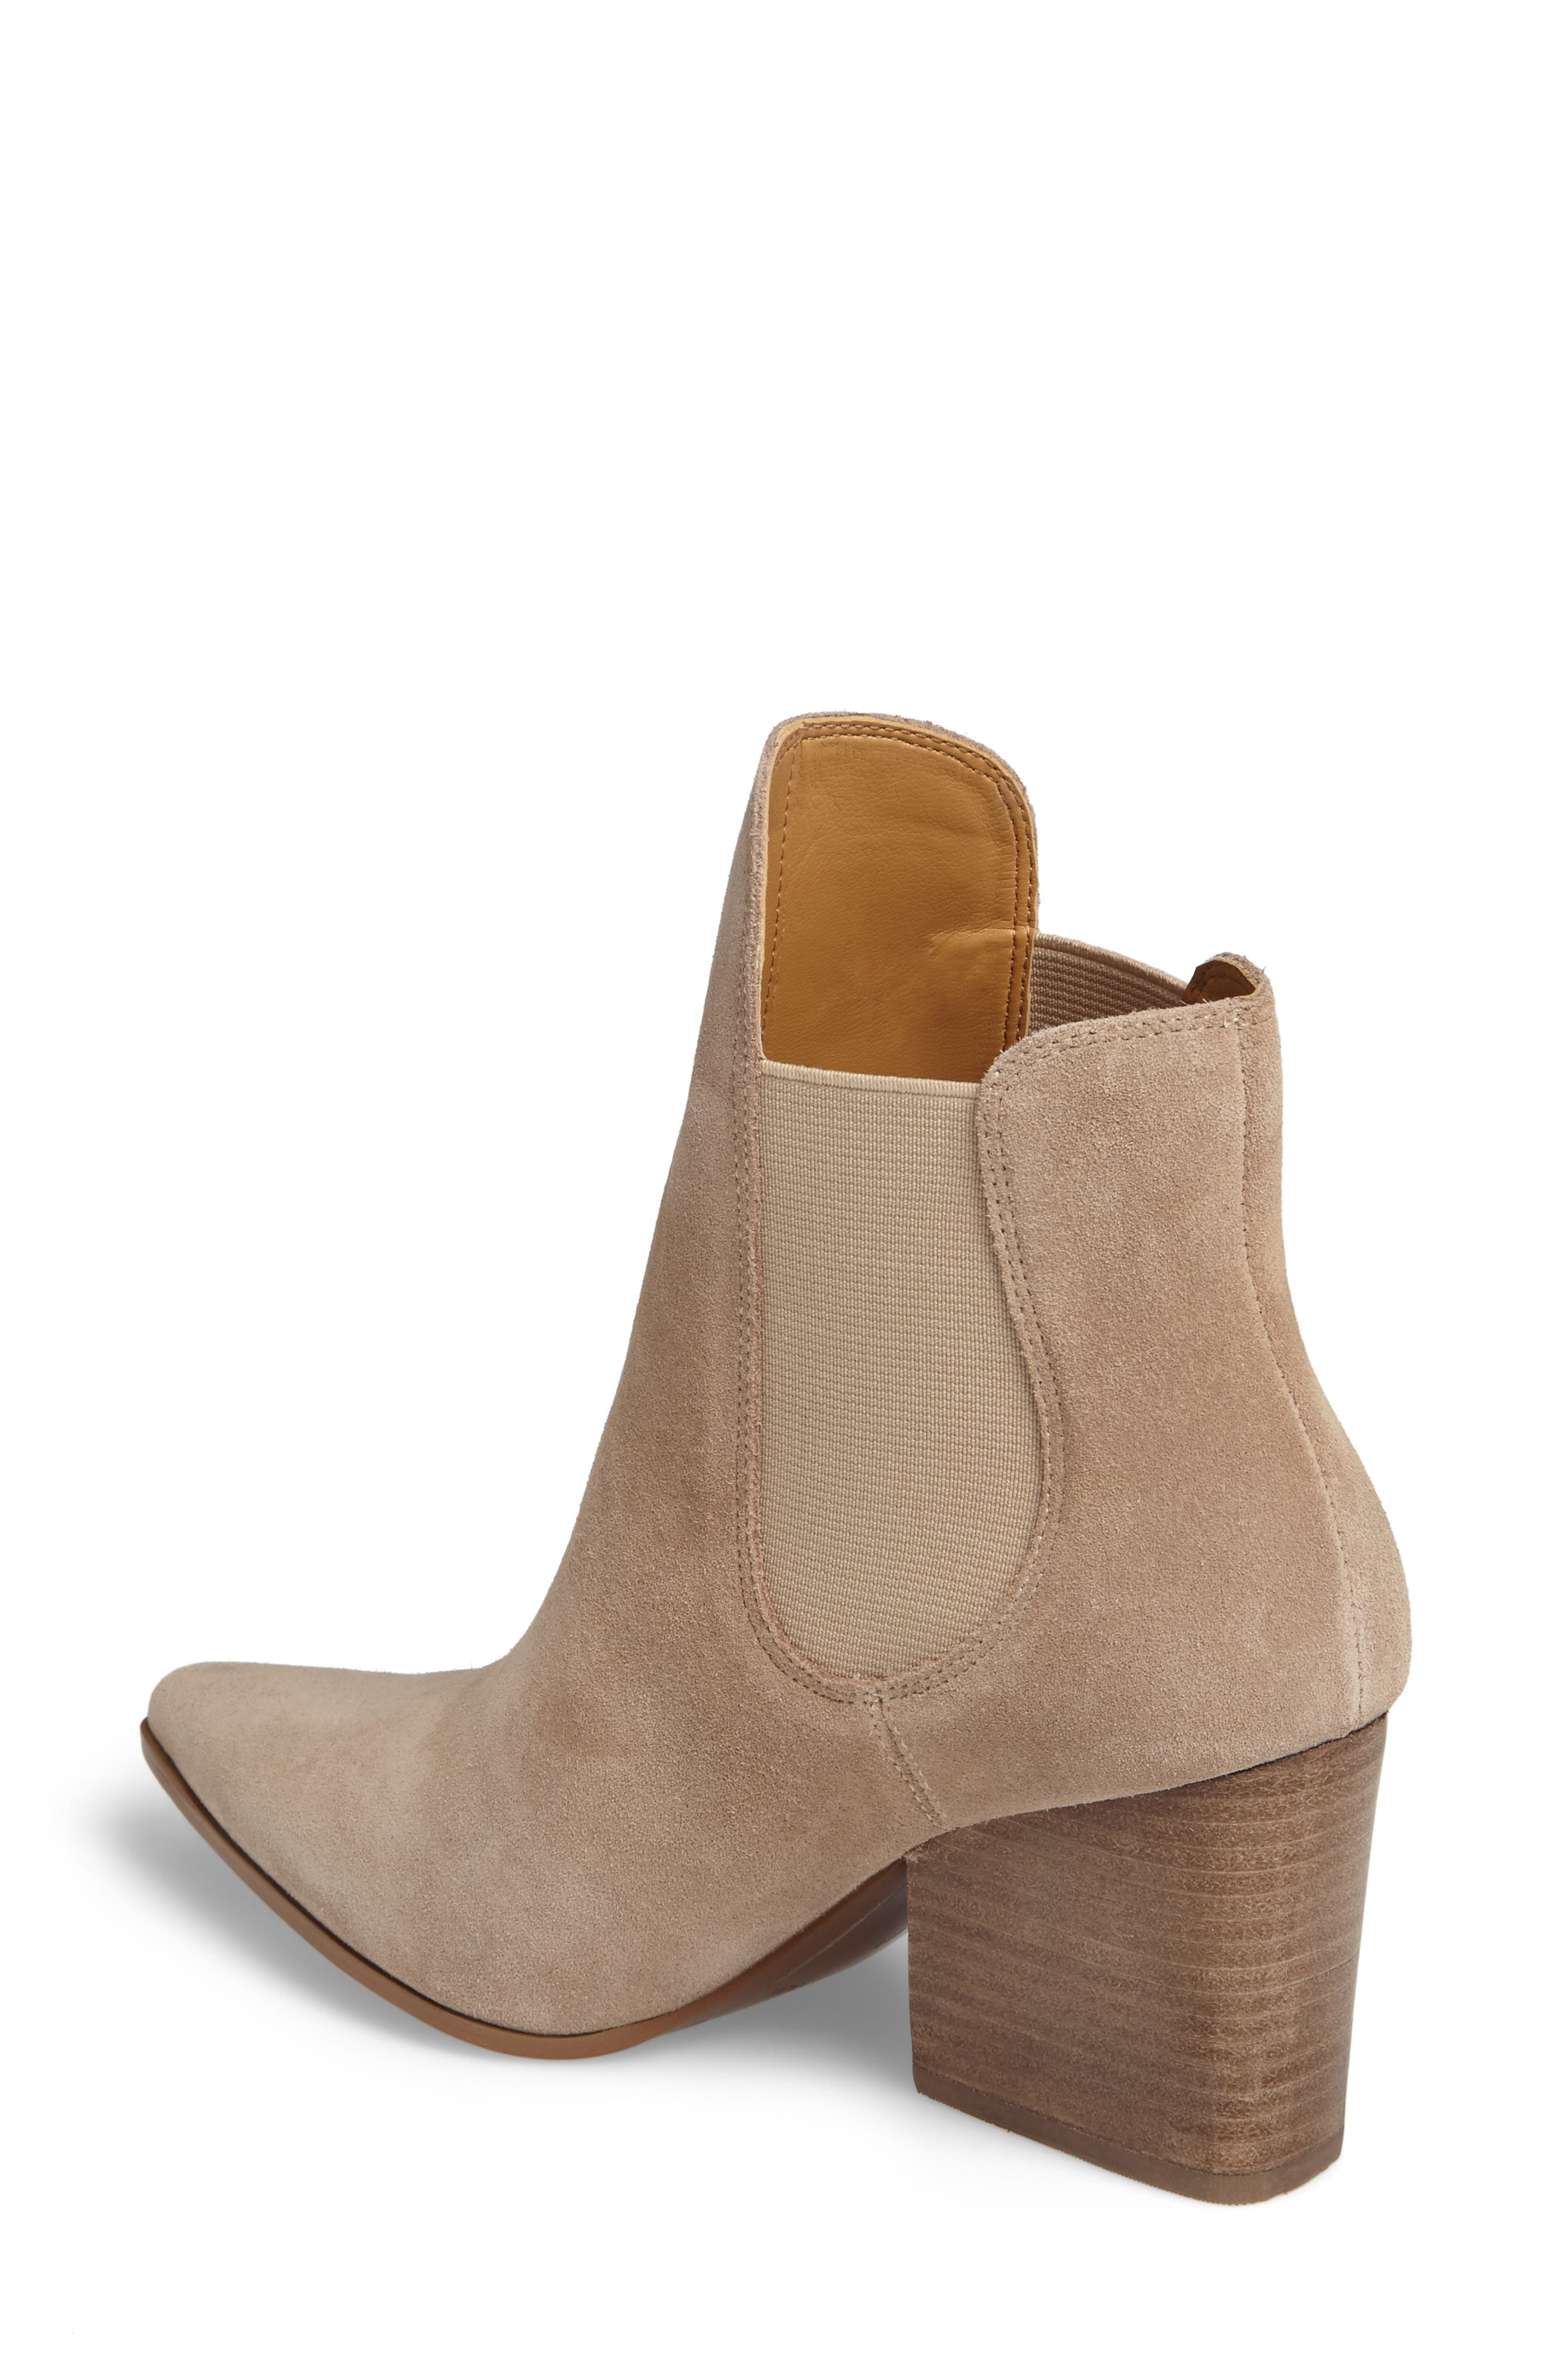 Alternate Image 2  - KENDALL + KYLIE 'Finley' Chelsea Boot (Women)